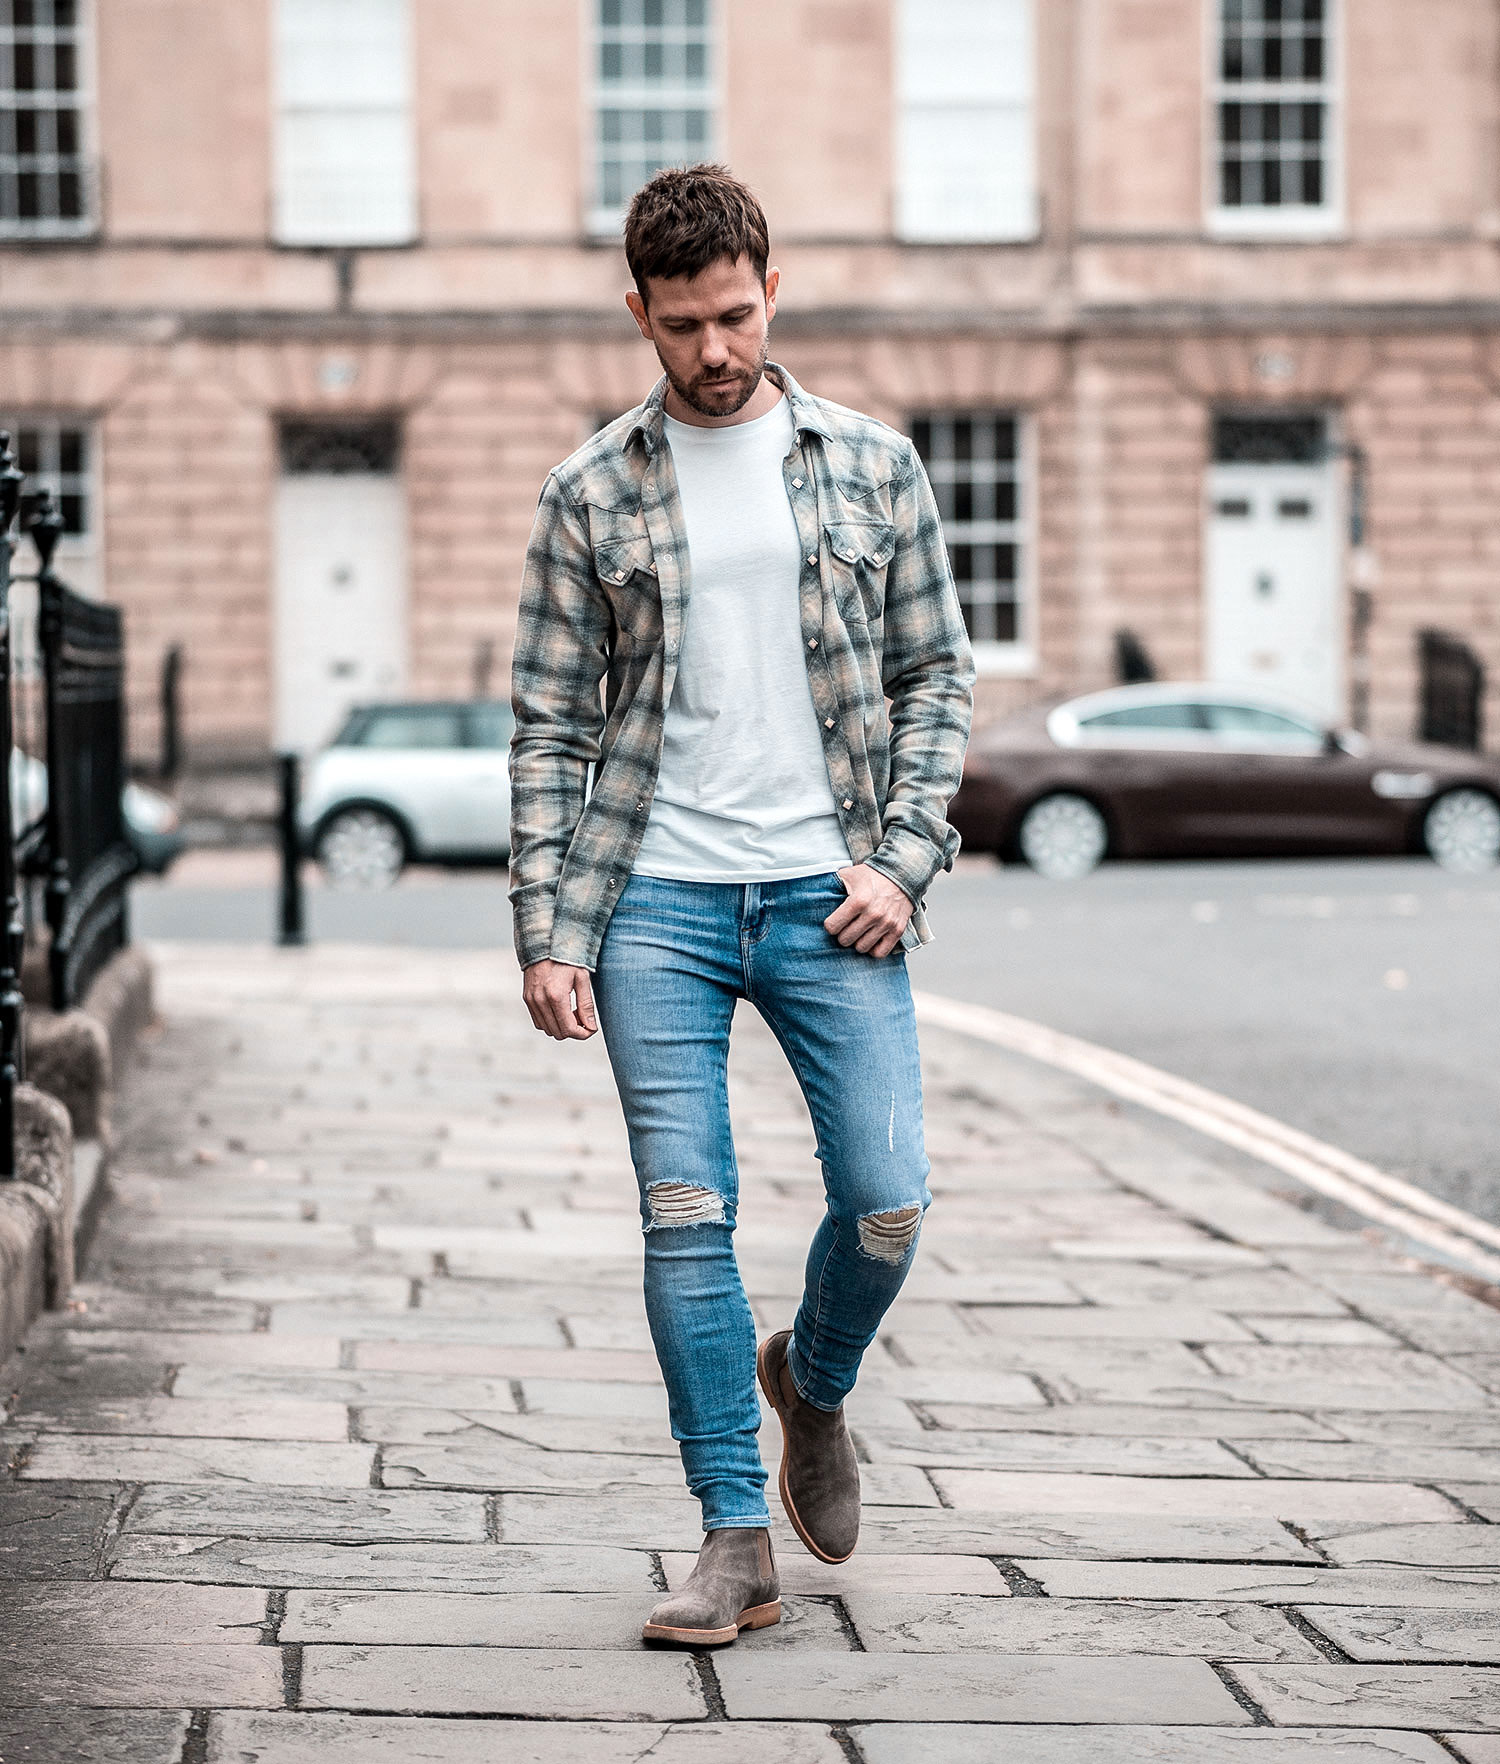 AllSaints Cowboy Check Shirt And Boots Outfit | Your Average Guy